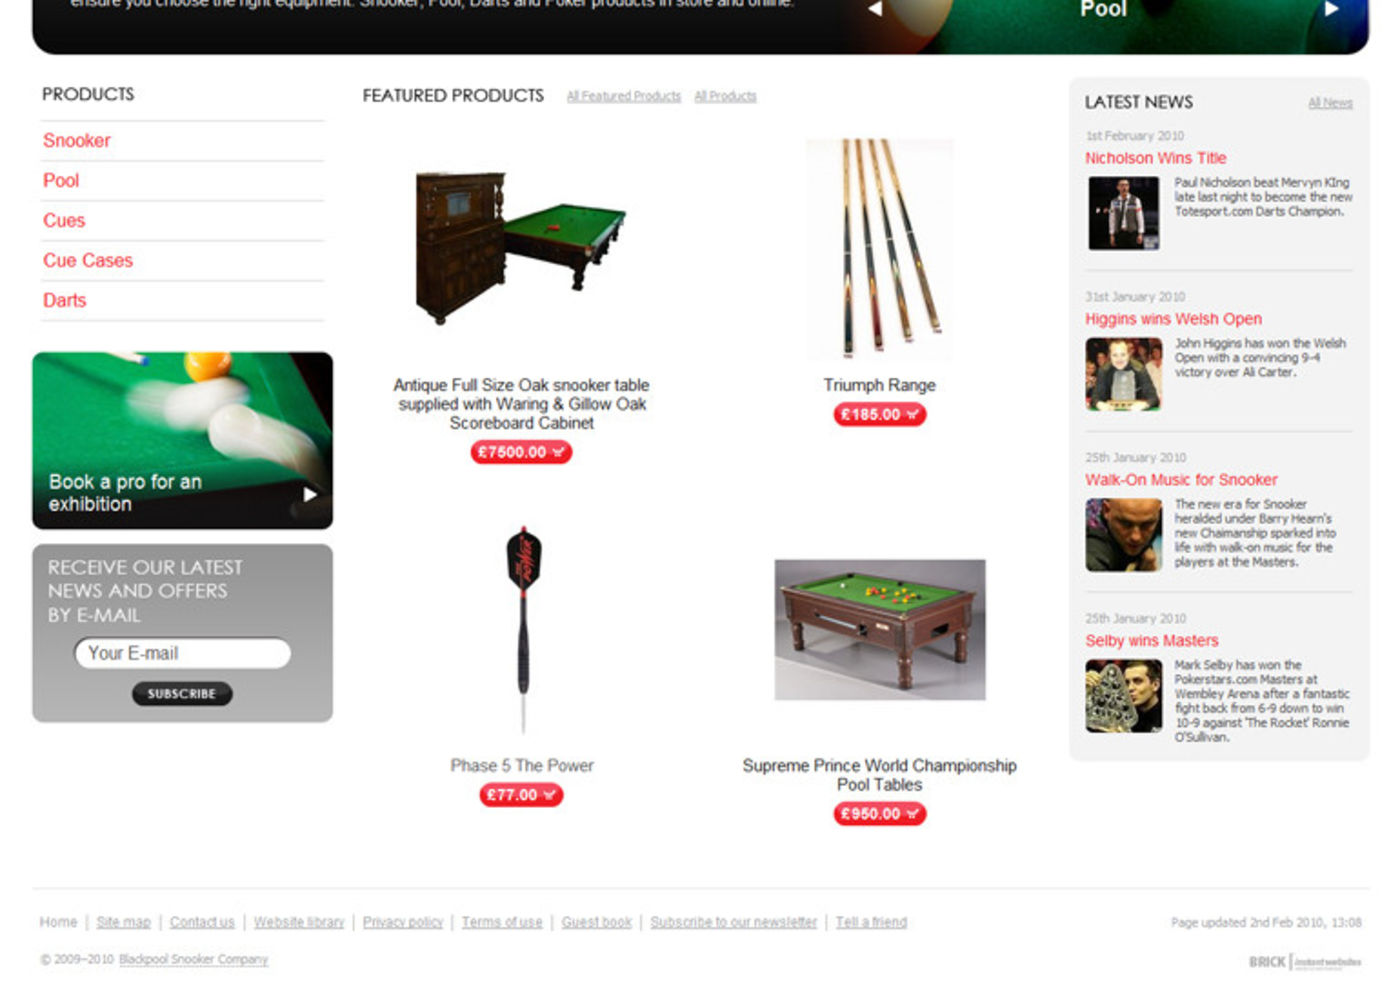 Blackpool Snooker Company Homepage footer